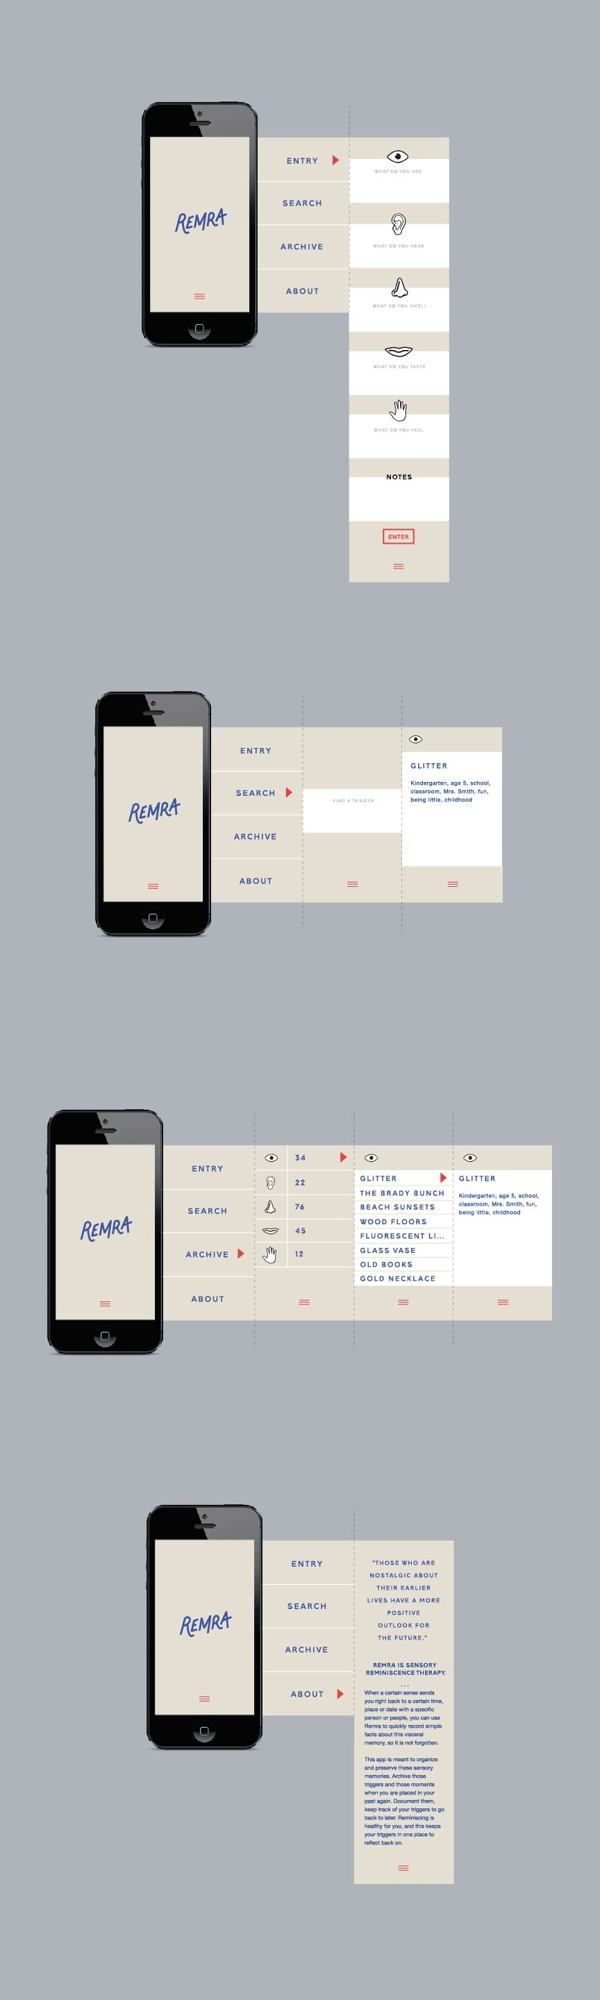 UI design for Remra App.